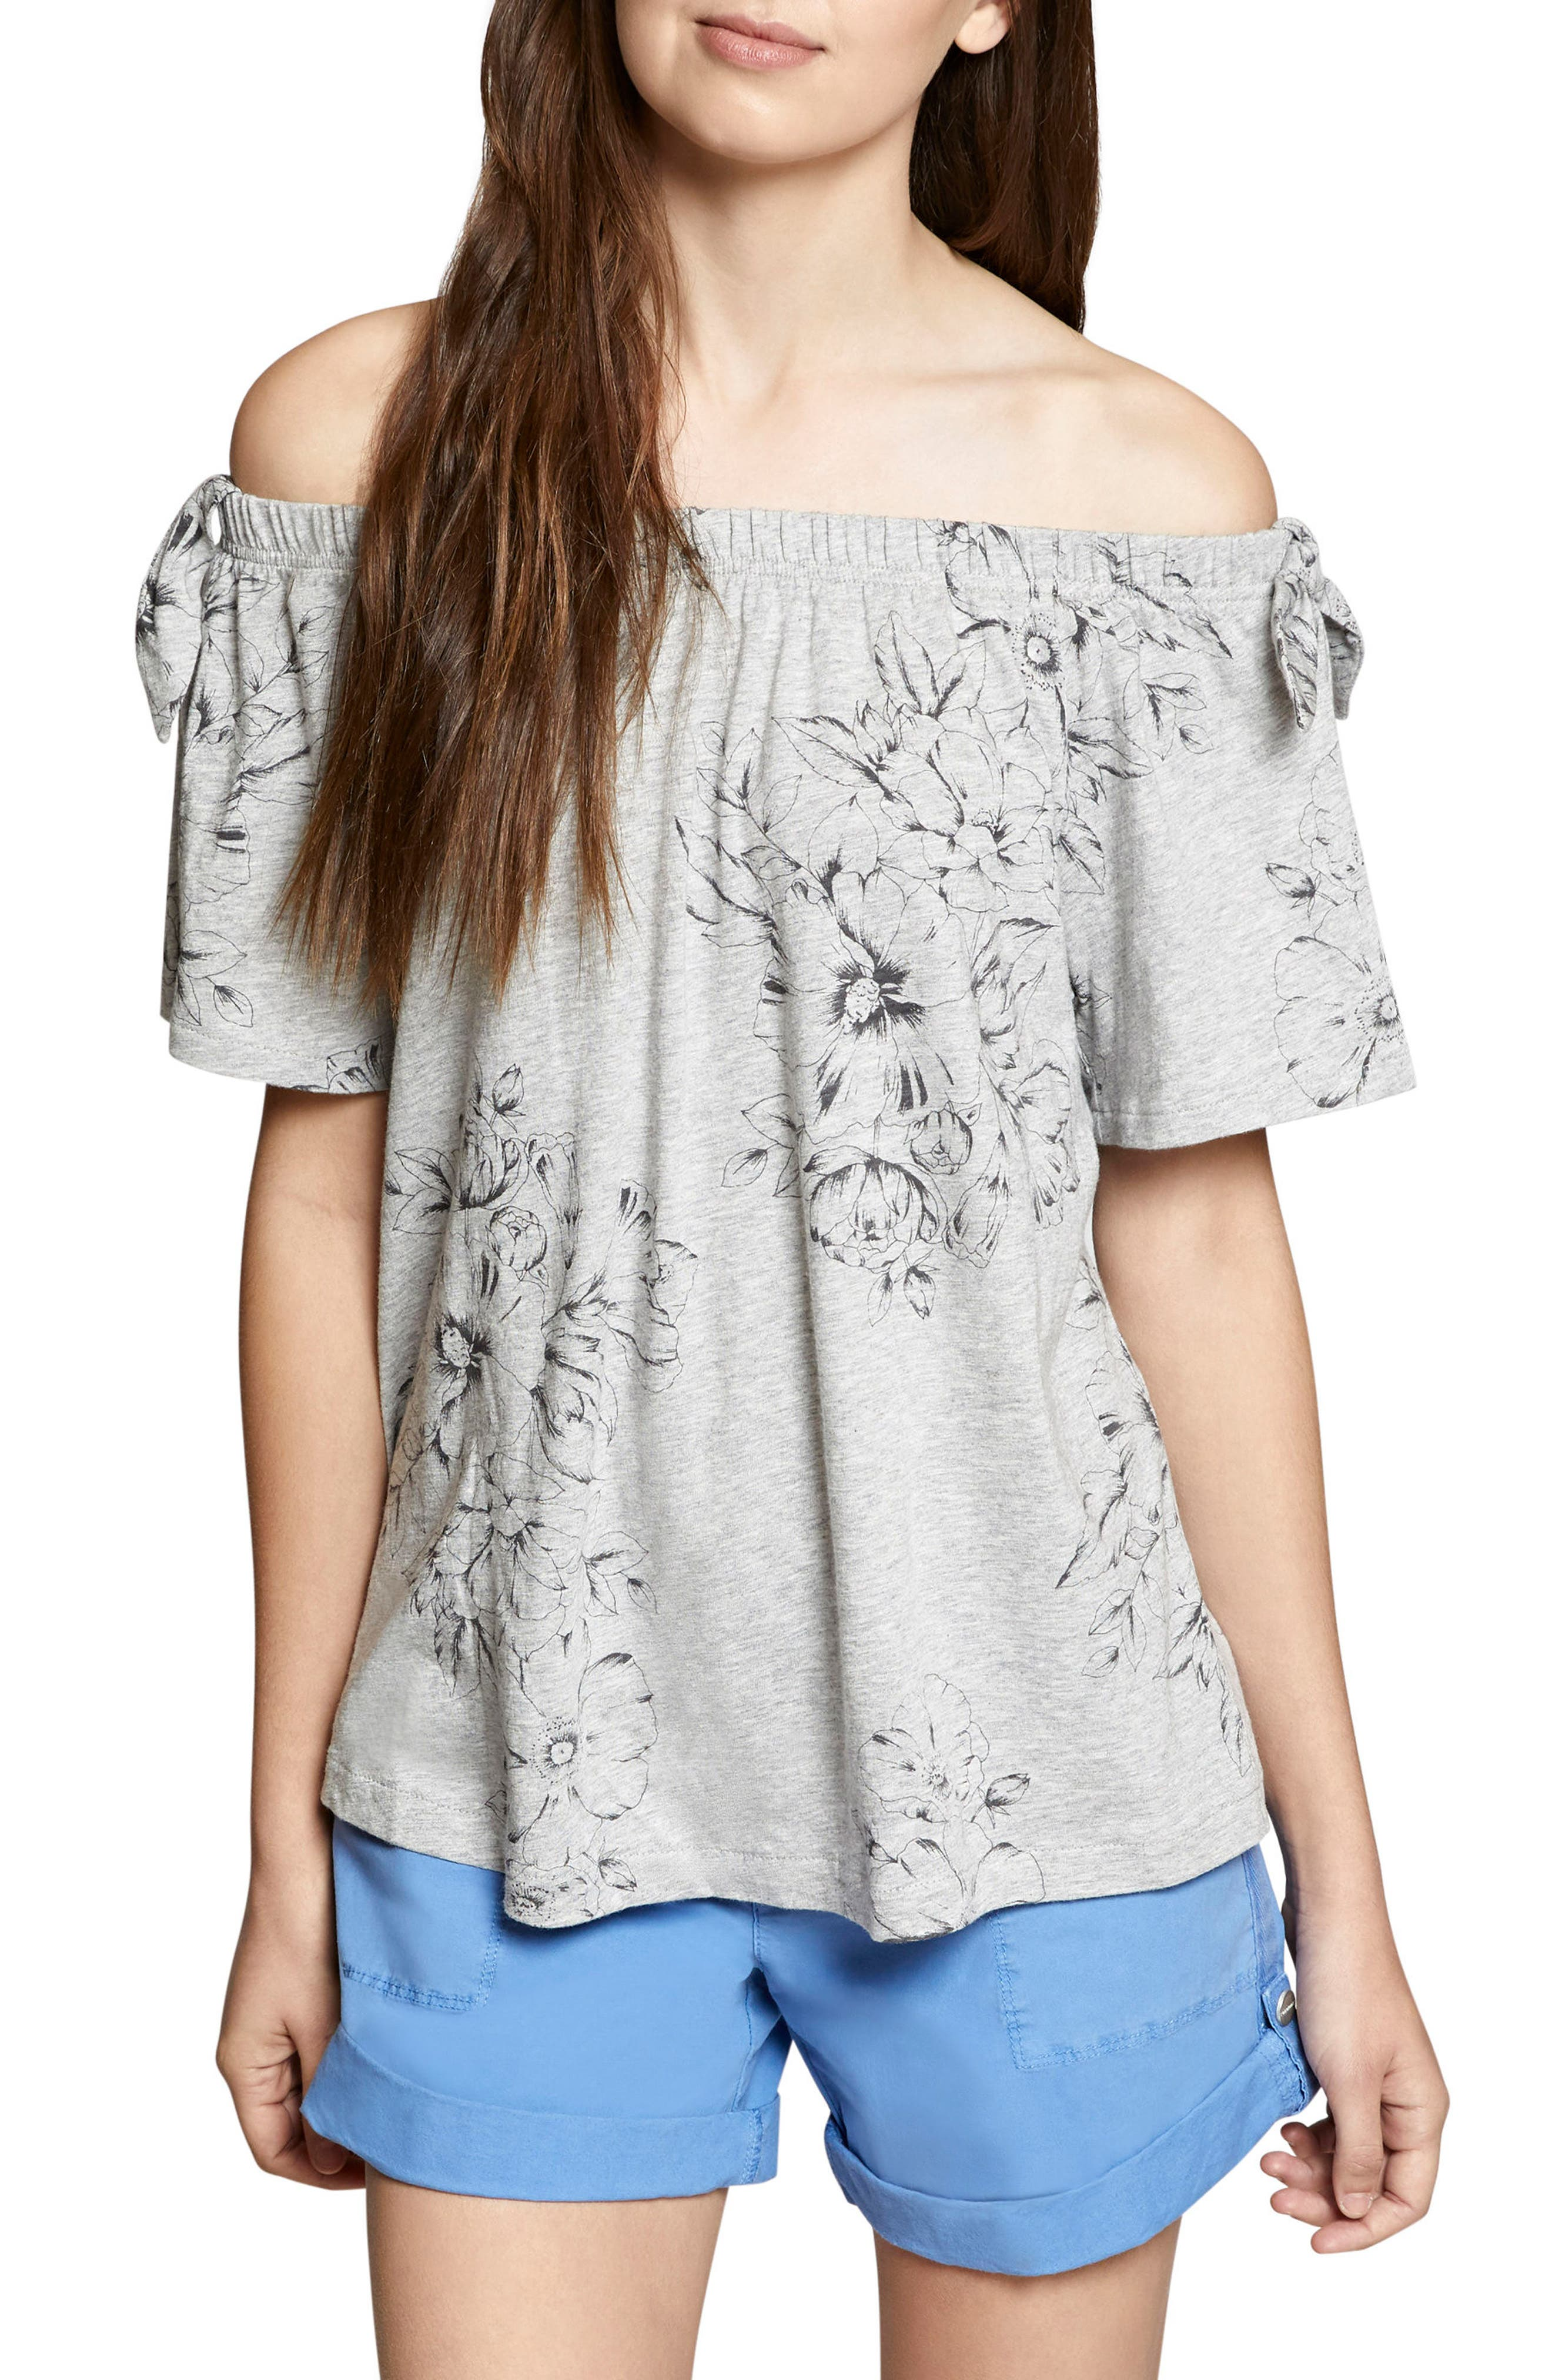 Riviera Off the Shoulder Tie Sleeve Top,                             Main thumbnail 1, color,                             032